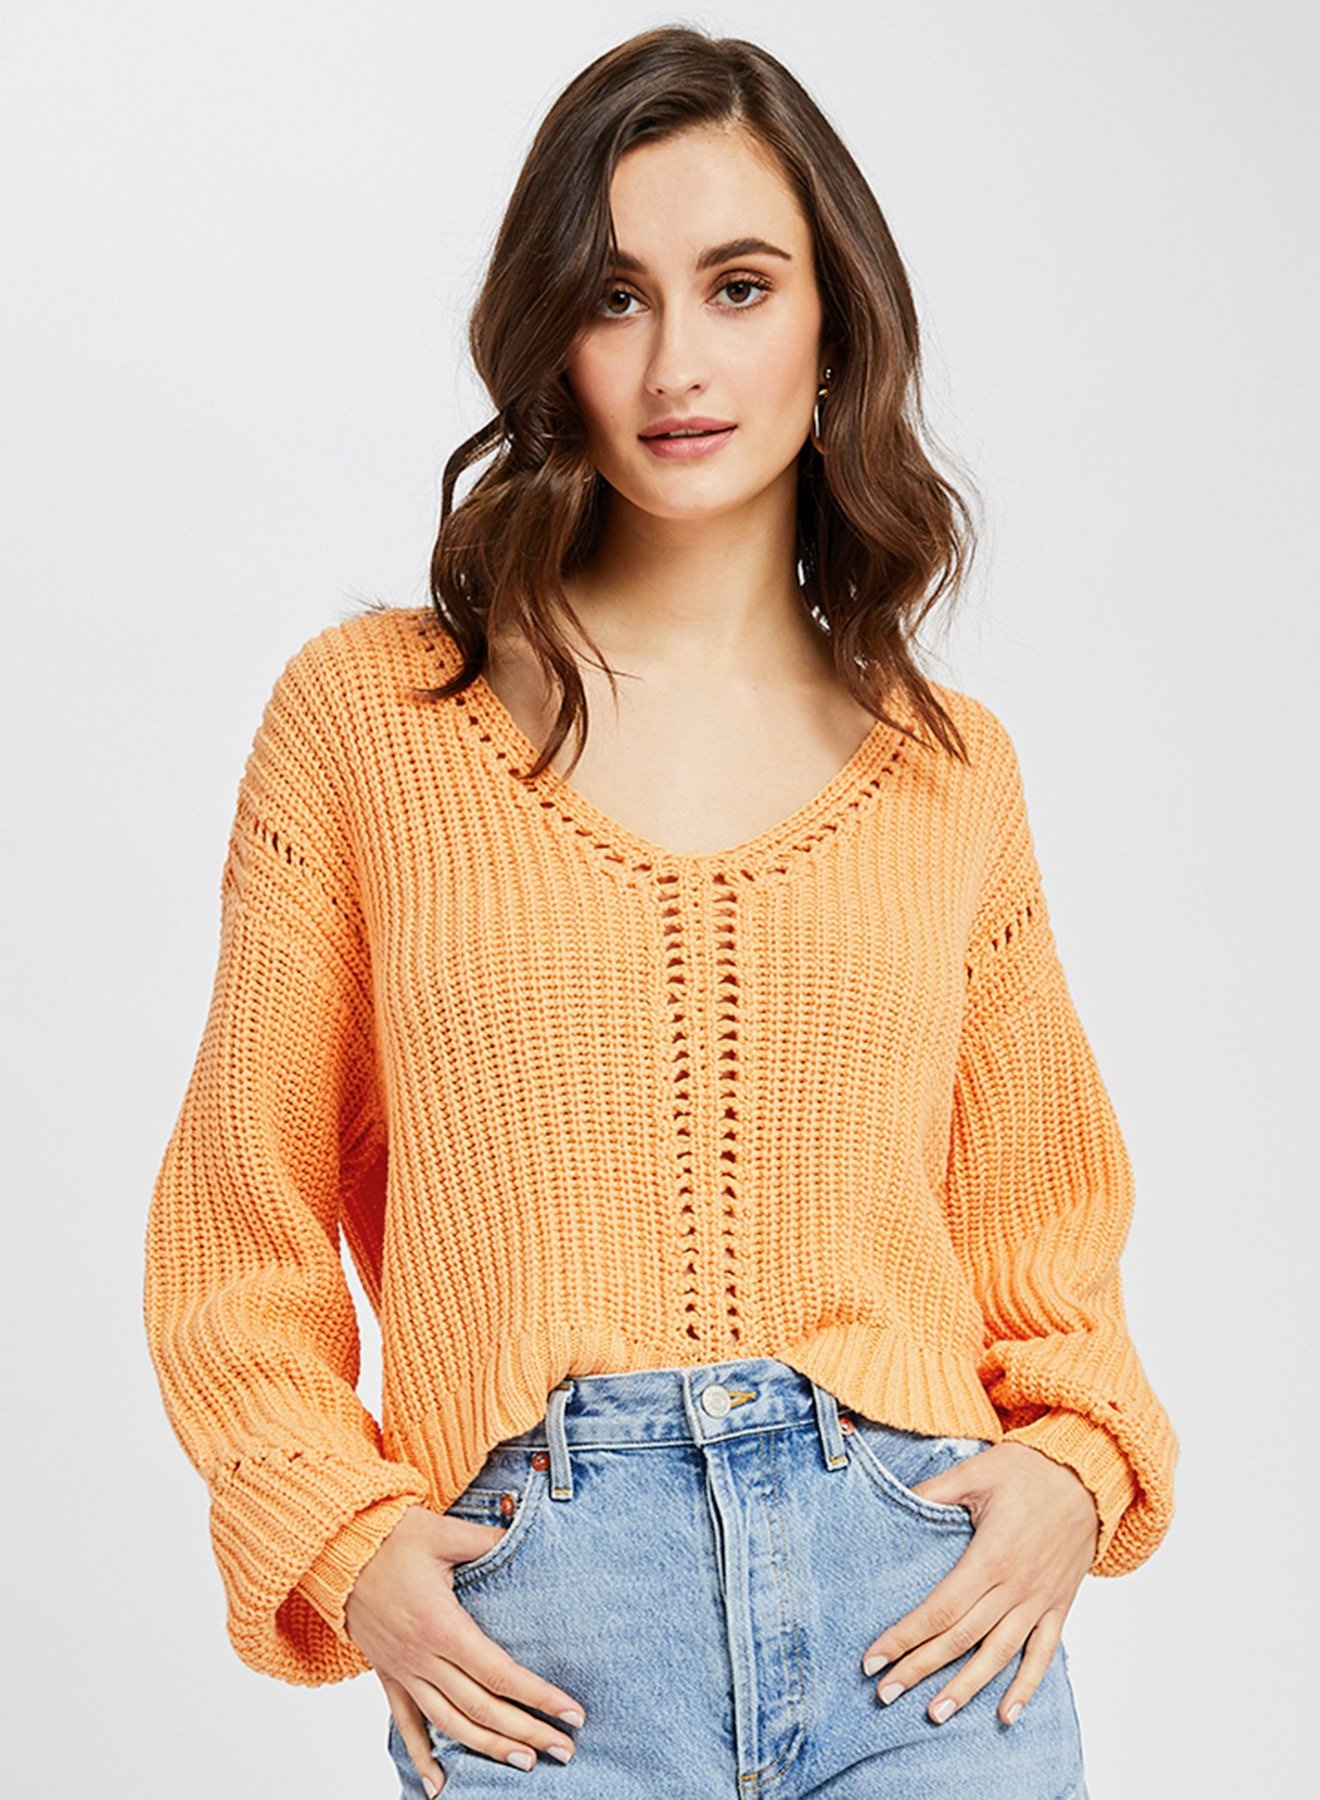 Gentlefawn Arizona Pullover